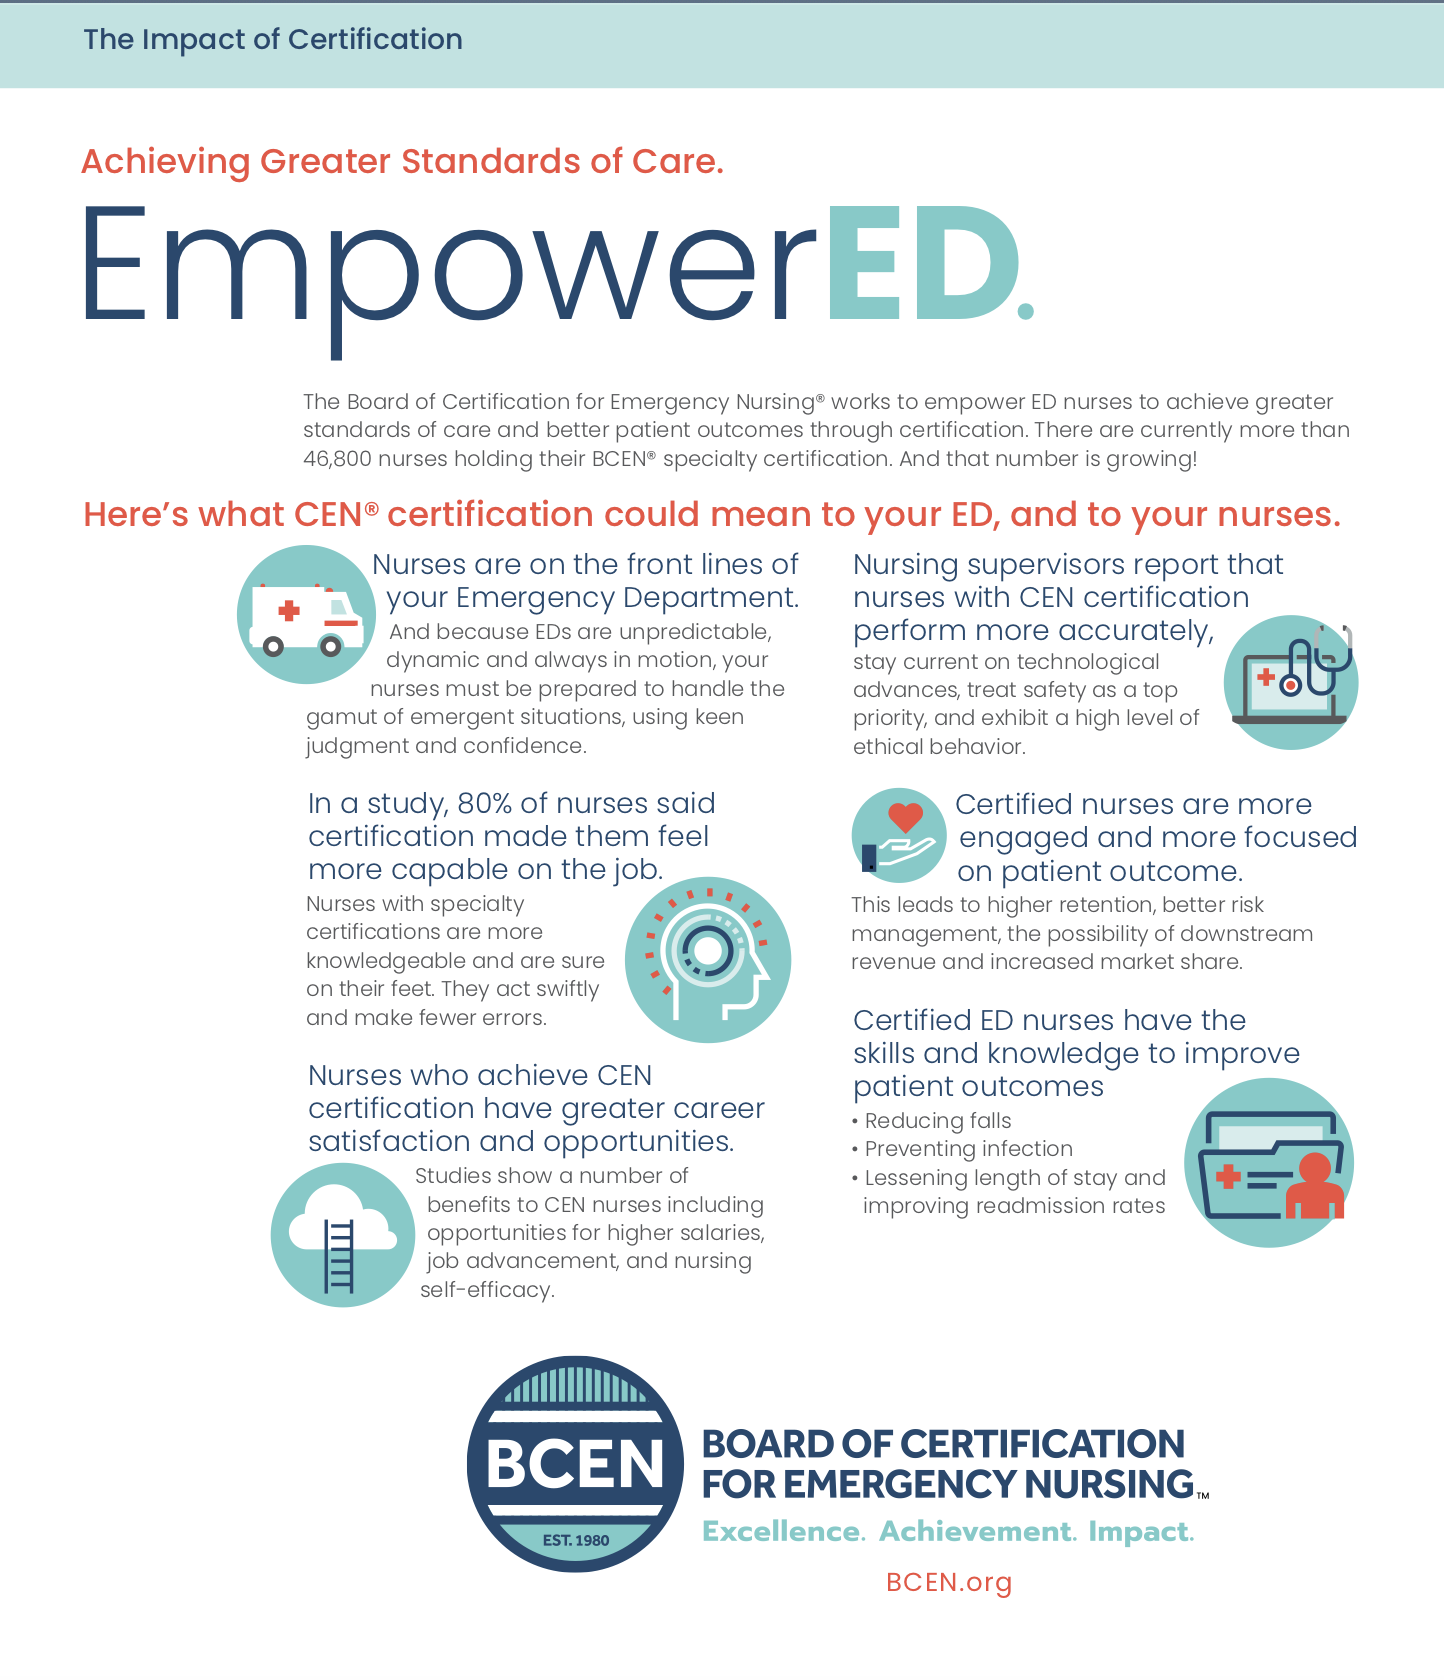 Resources - Board of Certification for Emergency Nursing